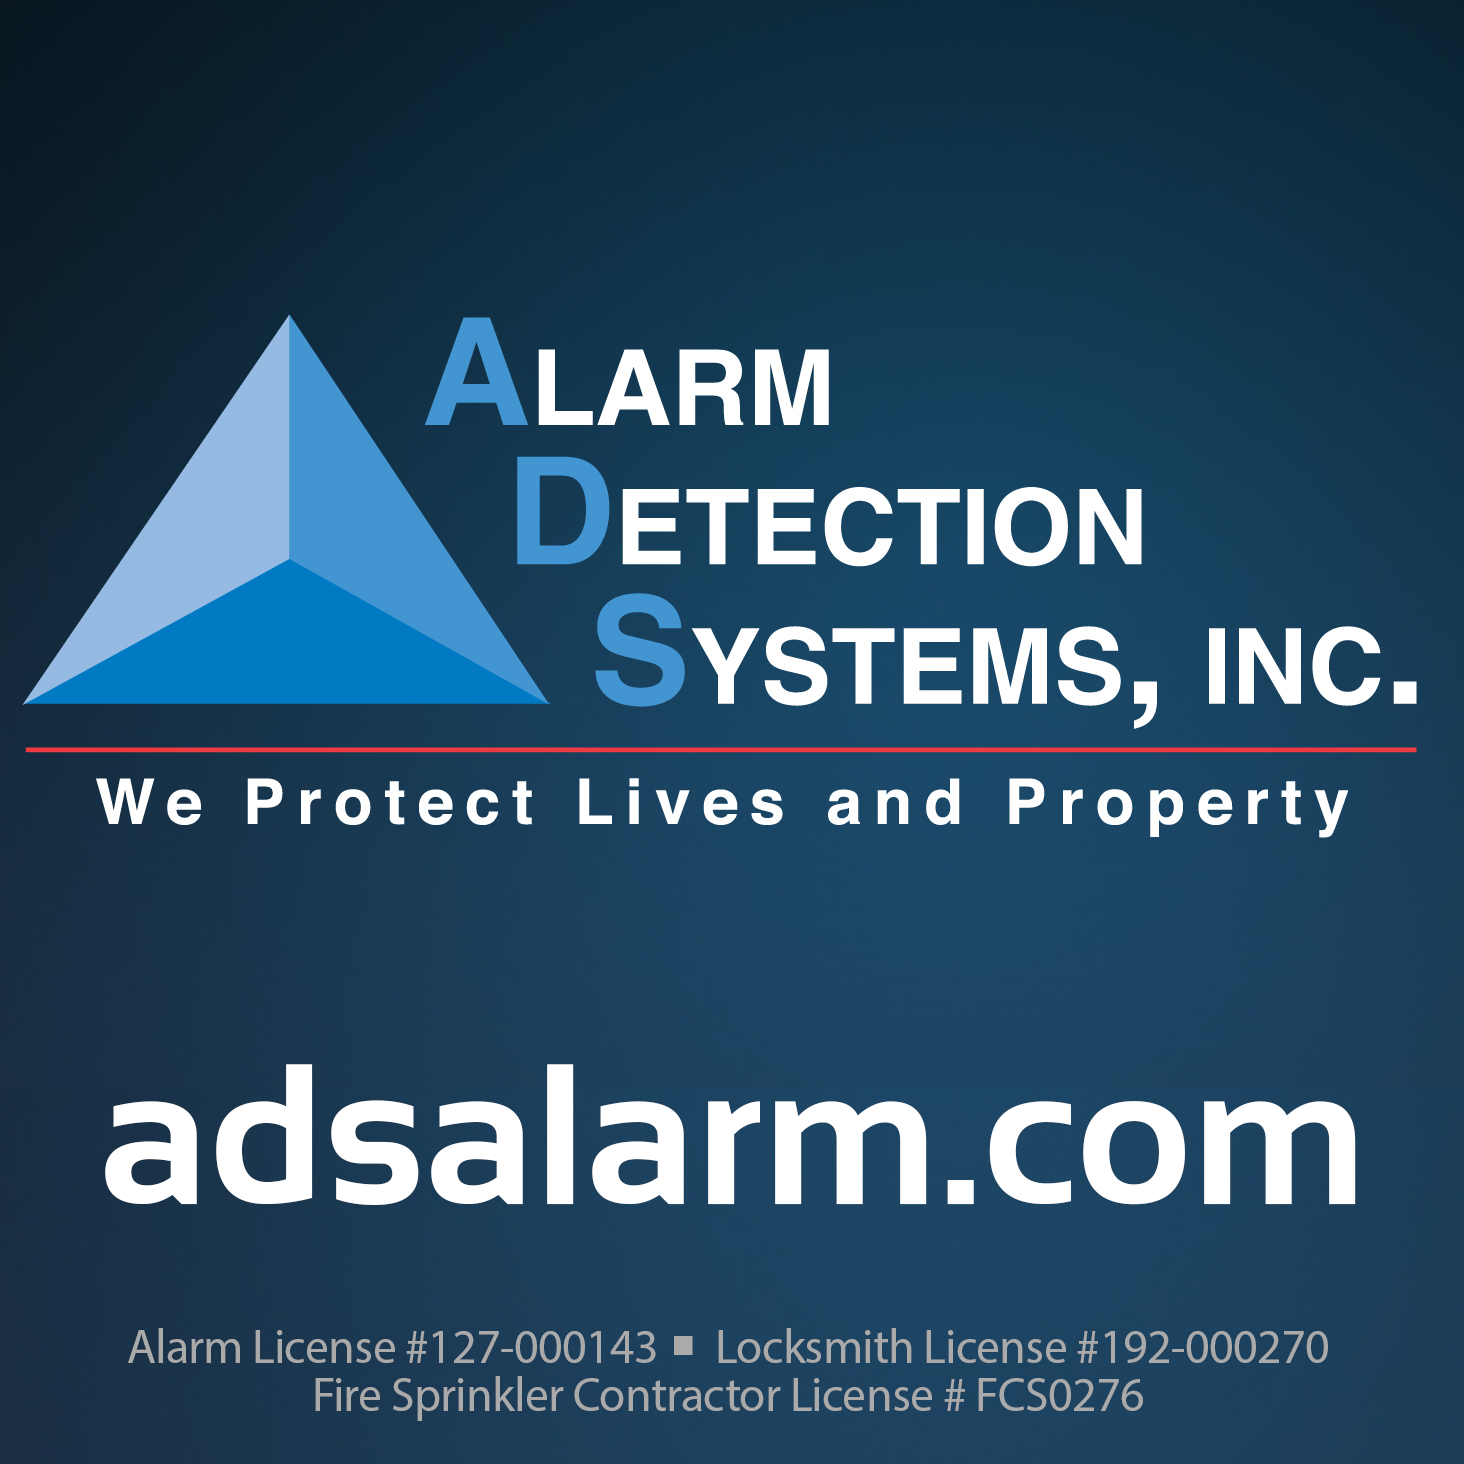 Alarm detection systems coupons near me in aurora 8coupons for Where can i get a fishing license near me